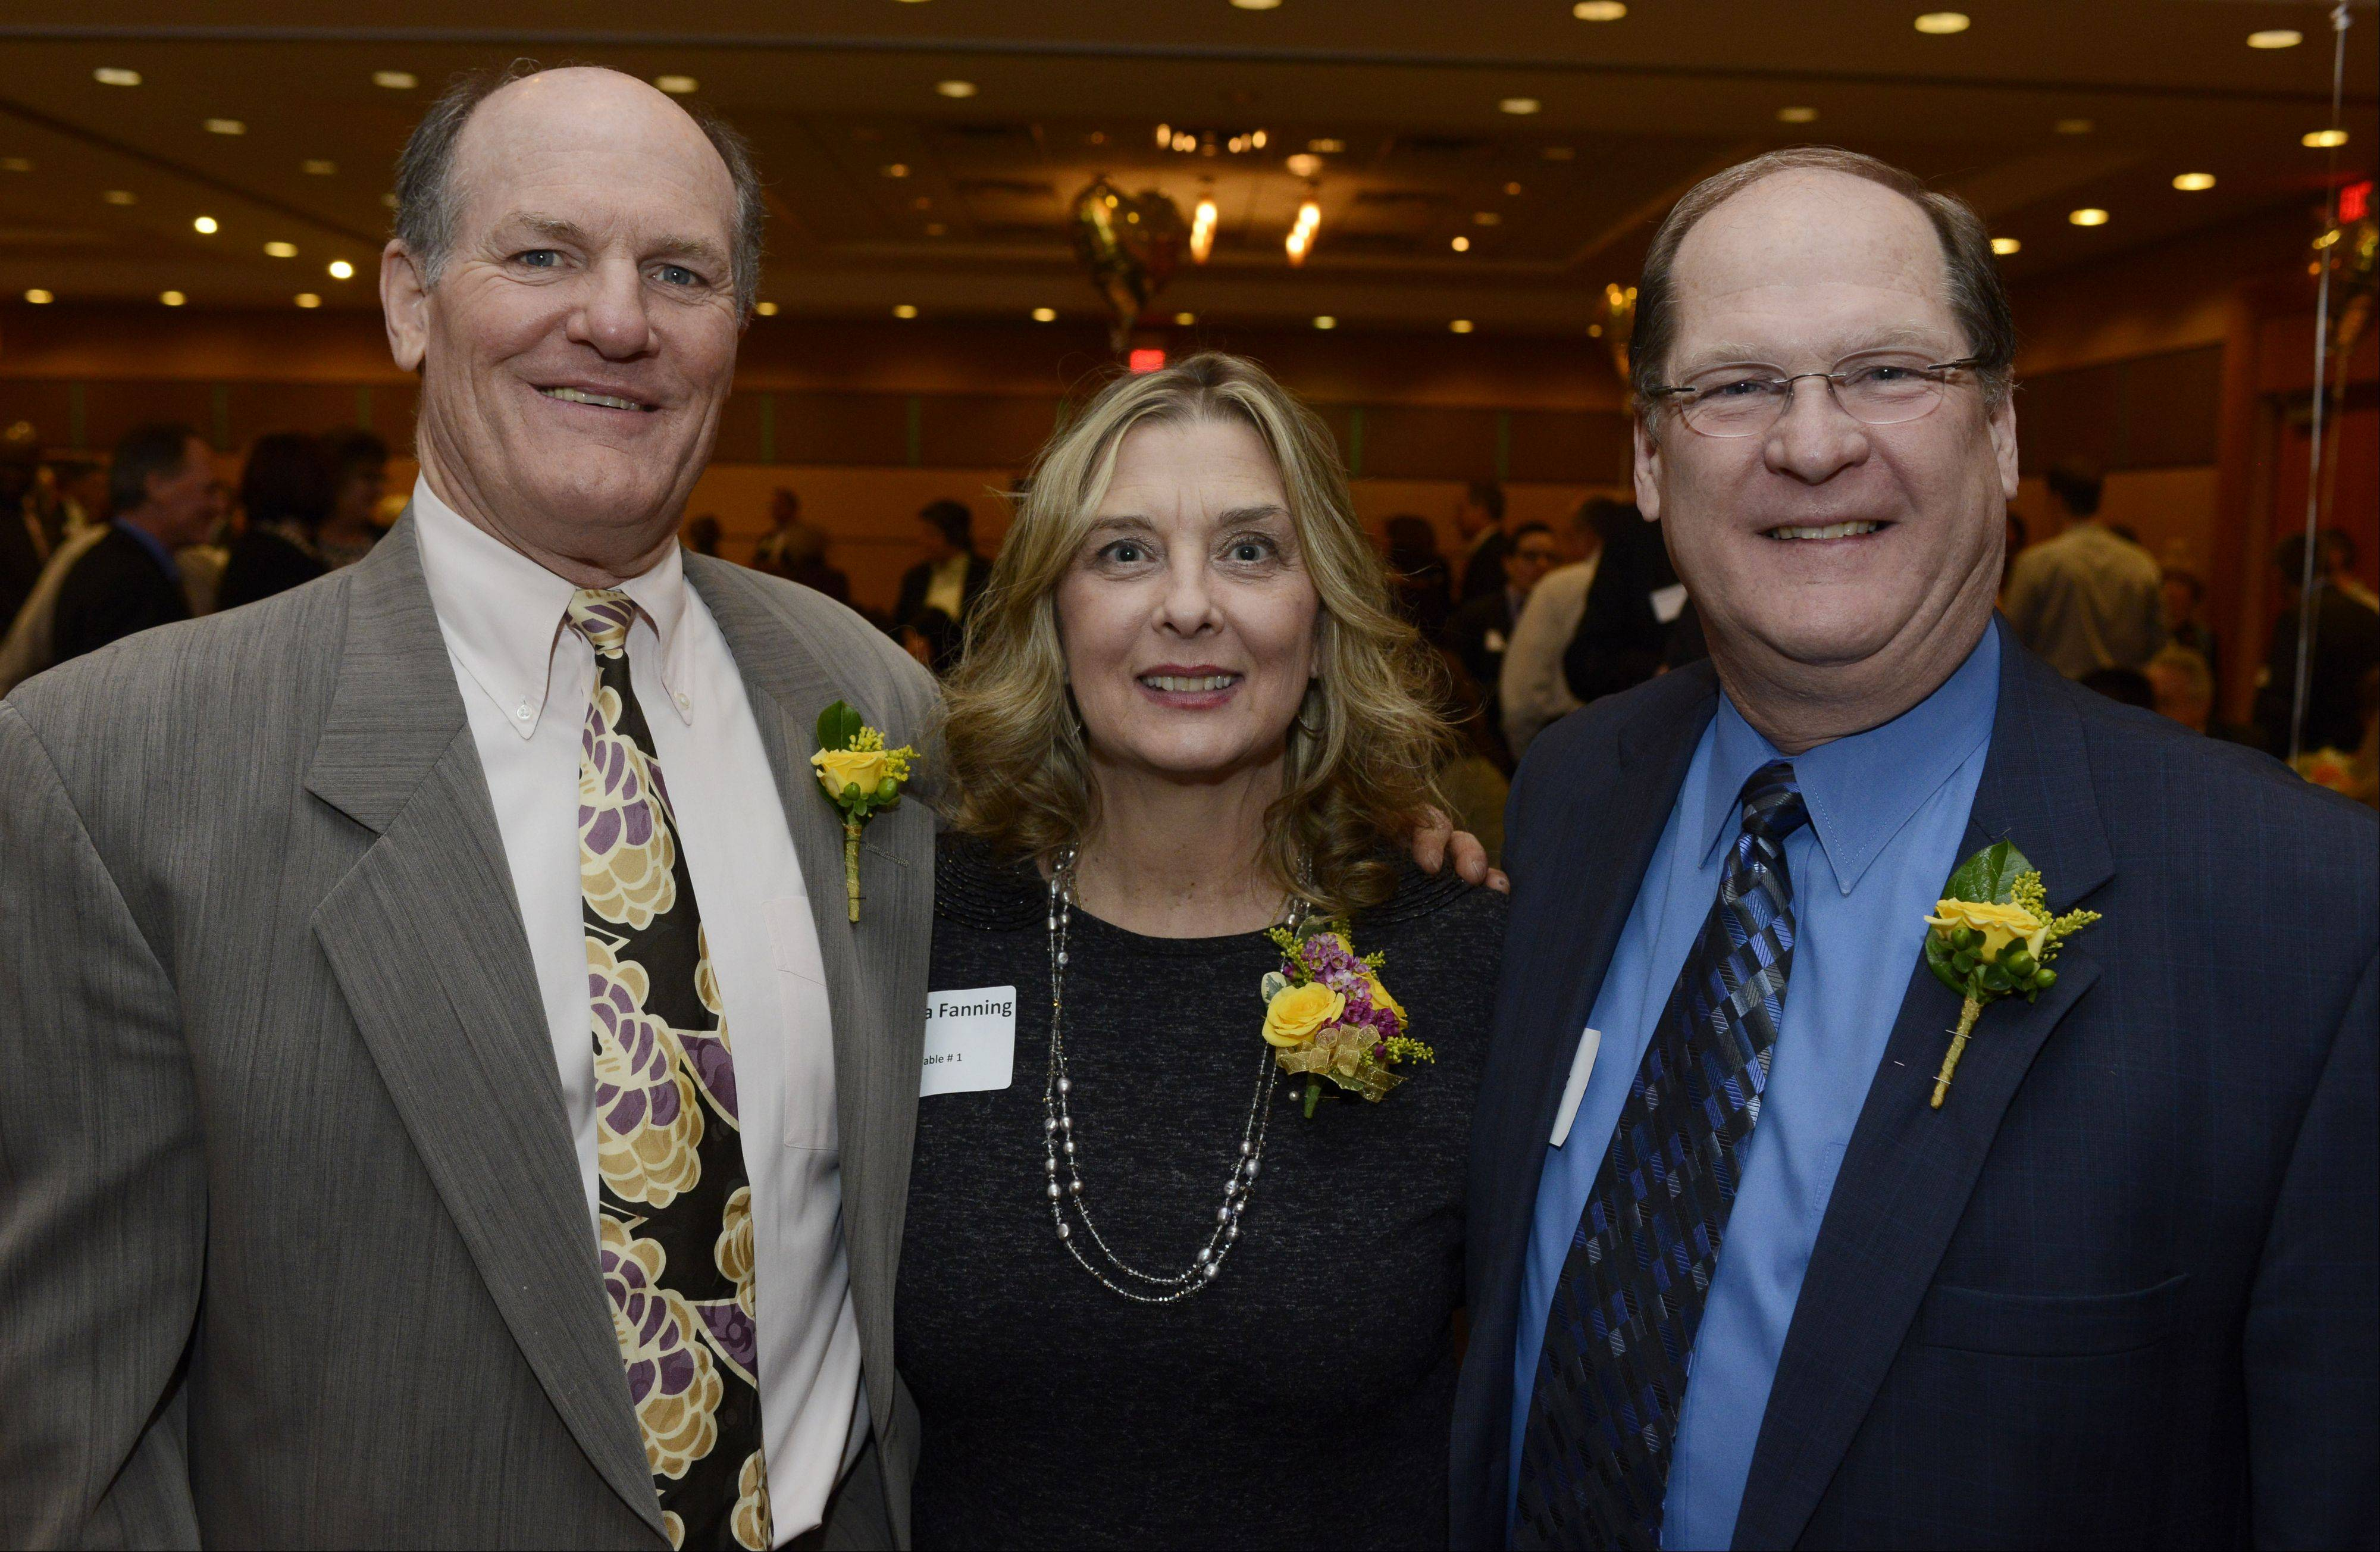 Left to right, Hearts of Gold Award winners Sam Moser, Donna Fanning and her husband, Patrick, during Arlington Heights' 15th annual Hearts of Gold dinner Saturday night. Moser won the Community Spirit Award, while the Fannings won the Heroic Award.